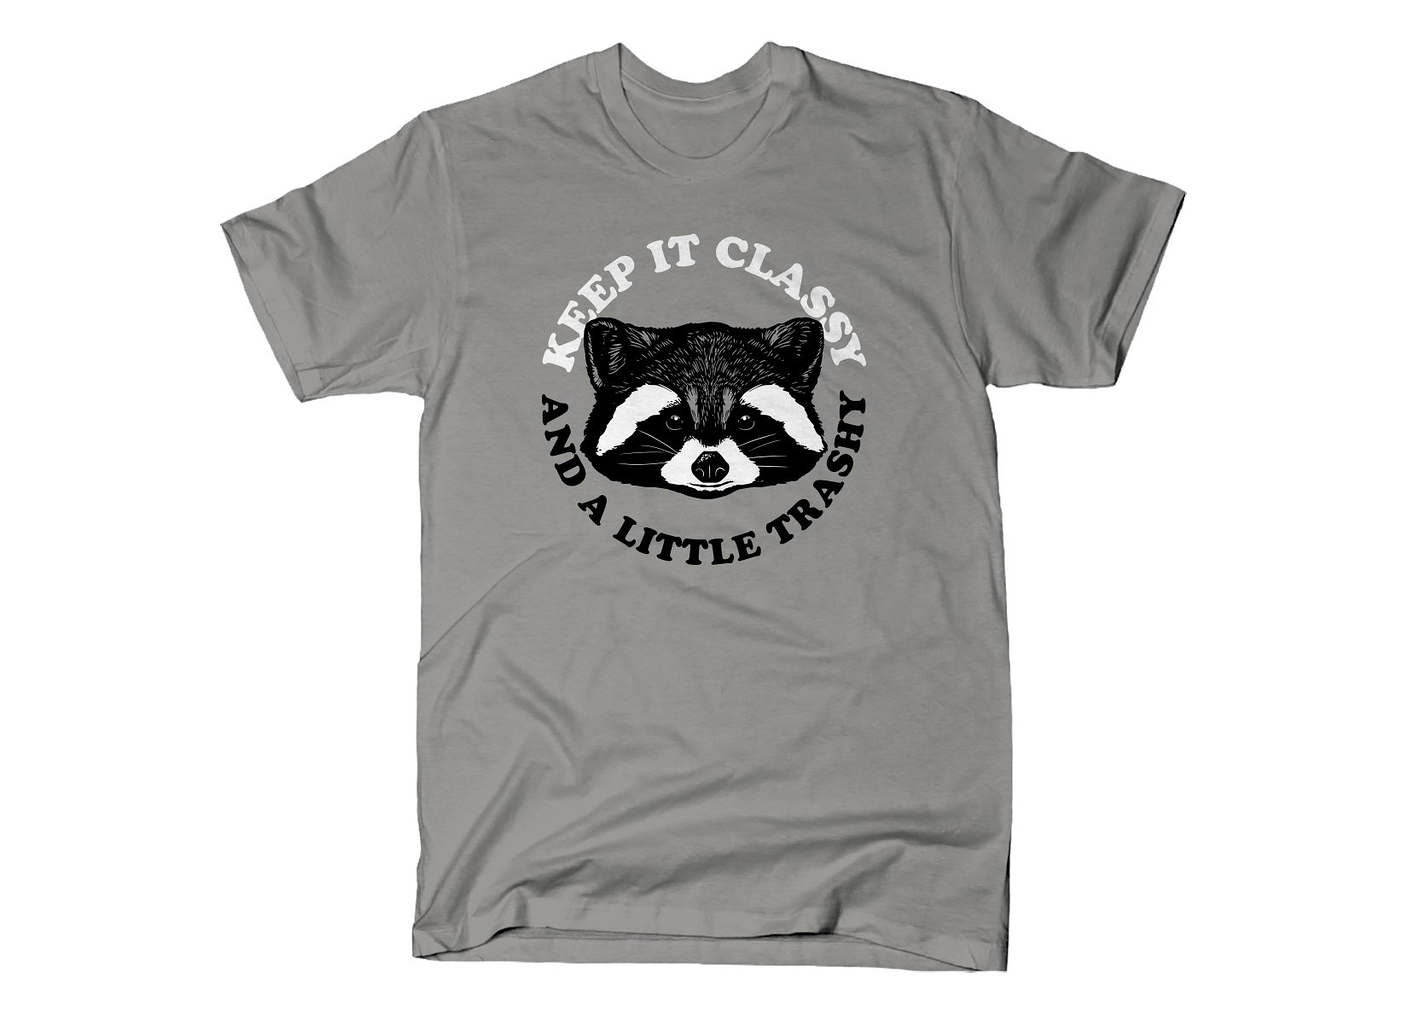 SnorgTees: Keep It Classy And A Little Trashy